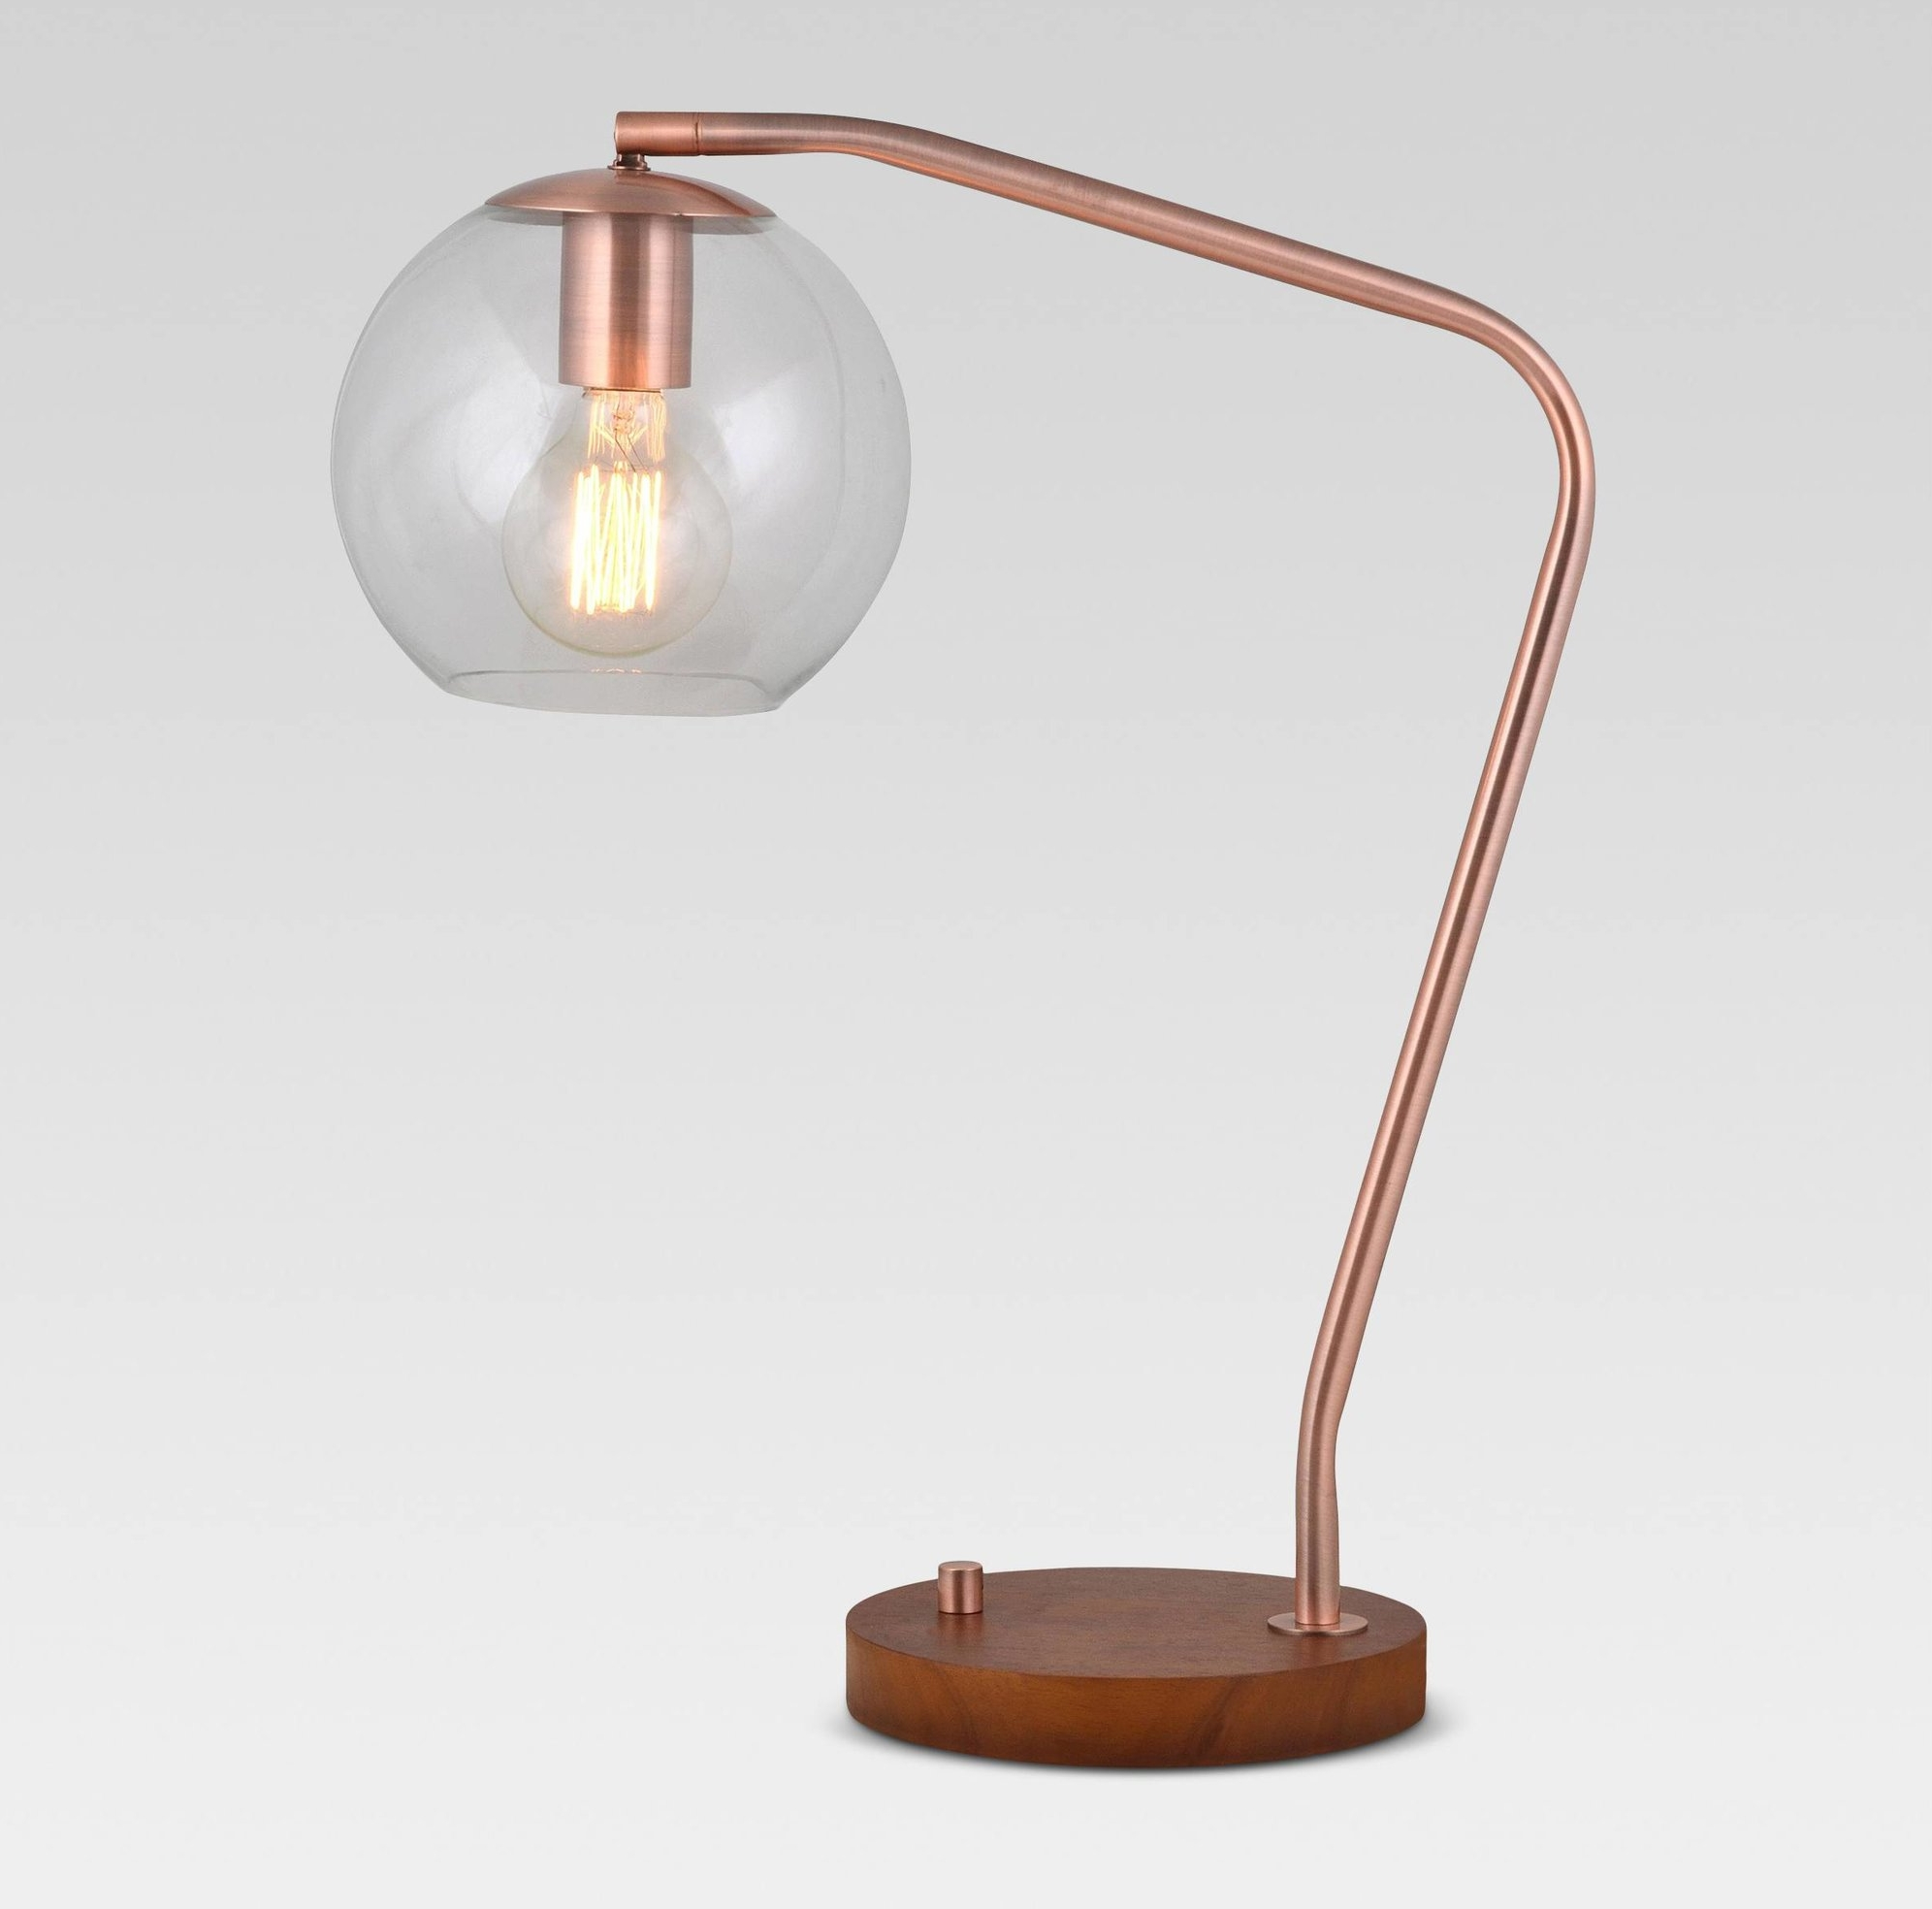 Rose Gold Globe Lamp - Here is another fun table lamp that could double as a desk lamp. I love how different the structure is, and the rose gold just speaks to my heart. You can find it HERE if you like it too!